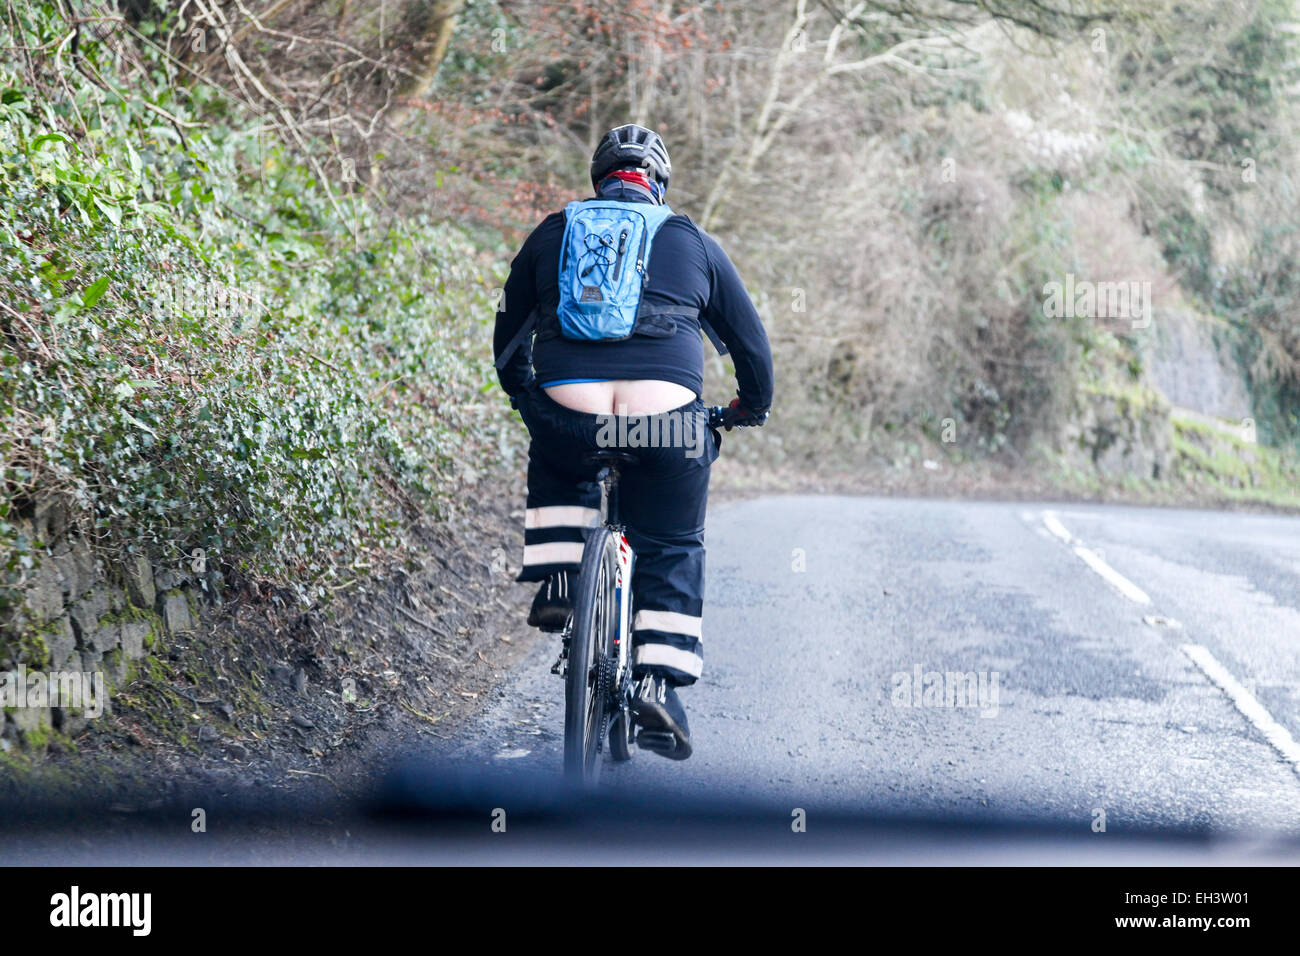 an-overweight-cyclist-showing-his-bum-or